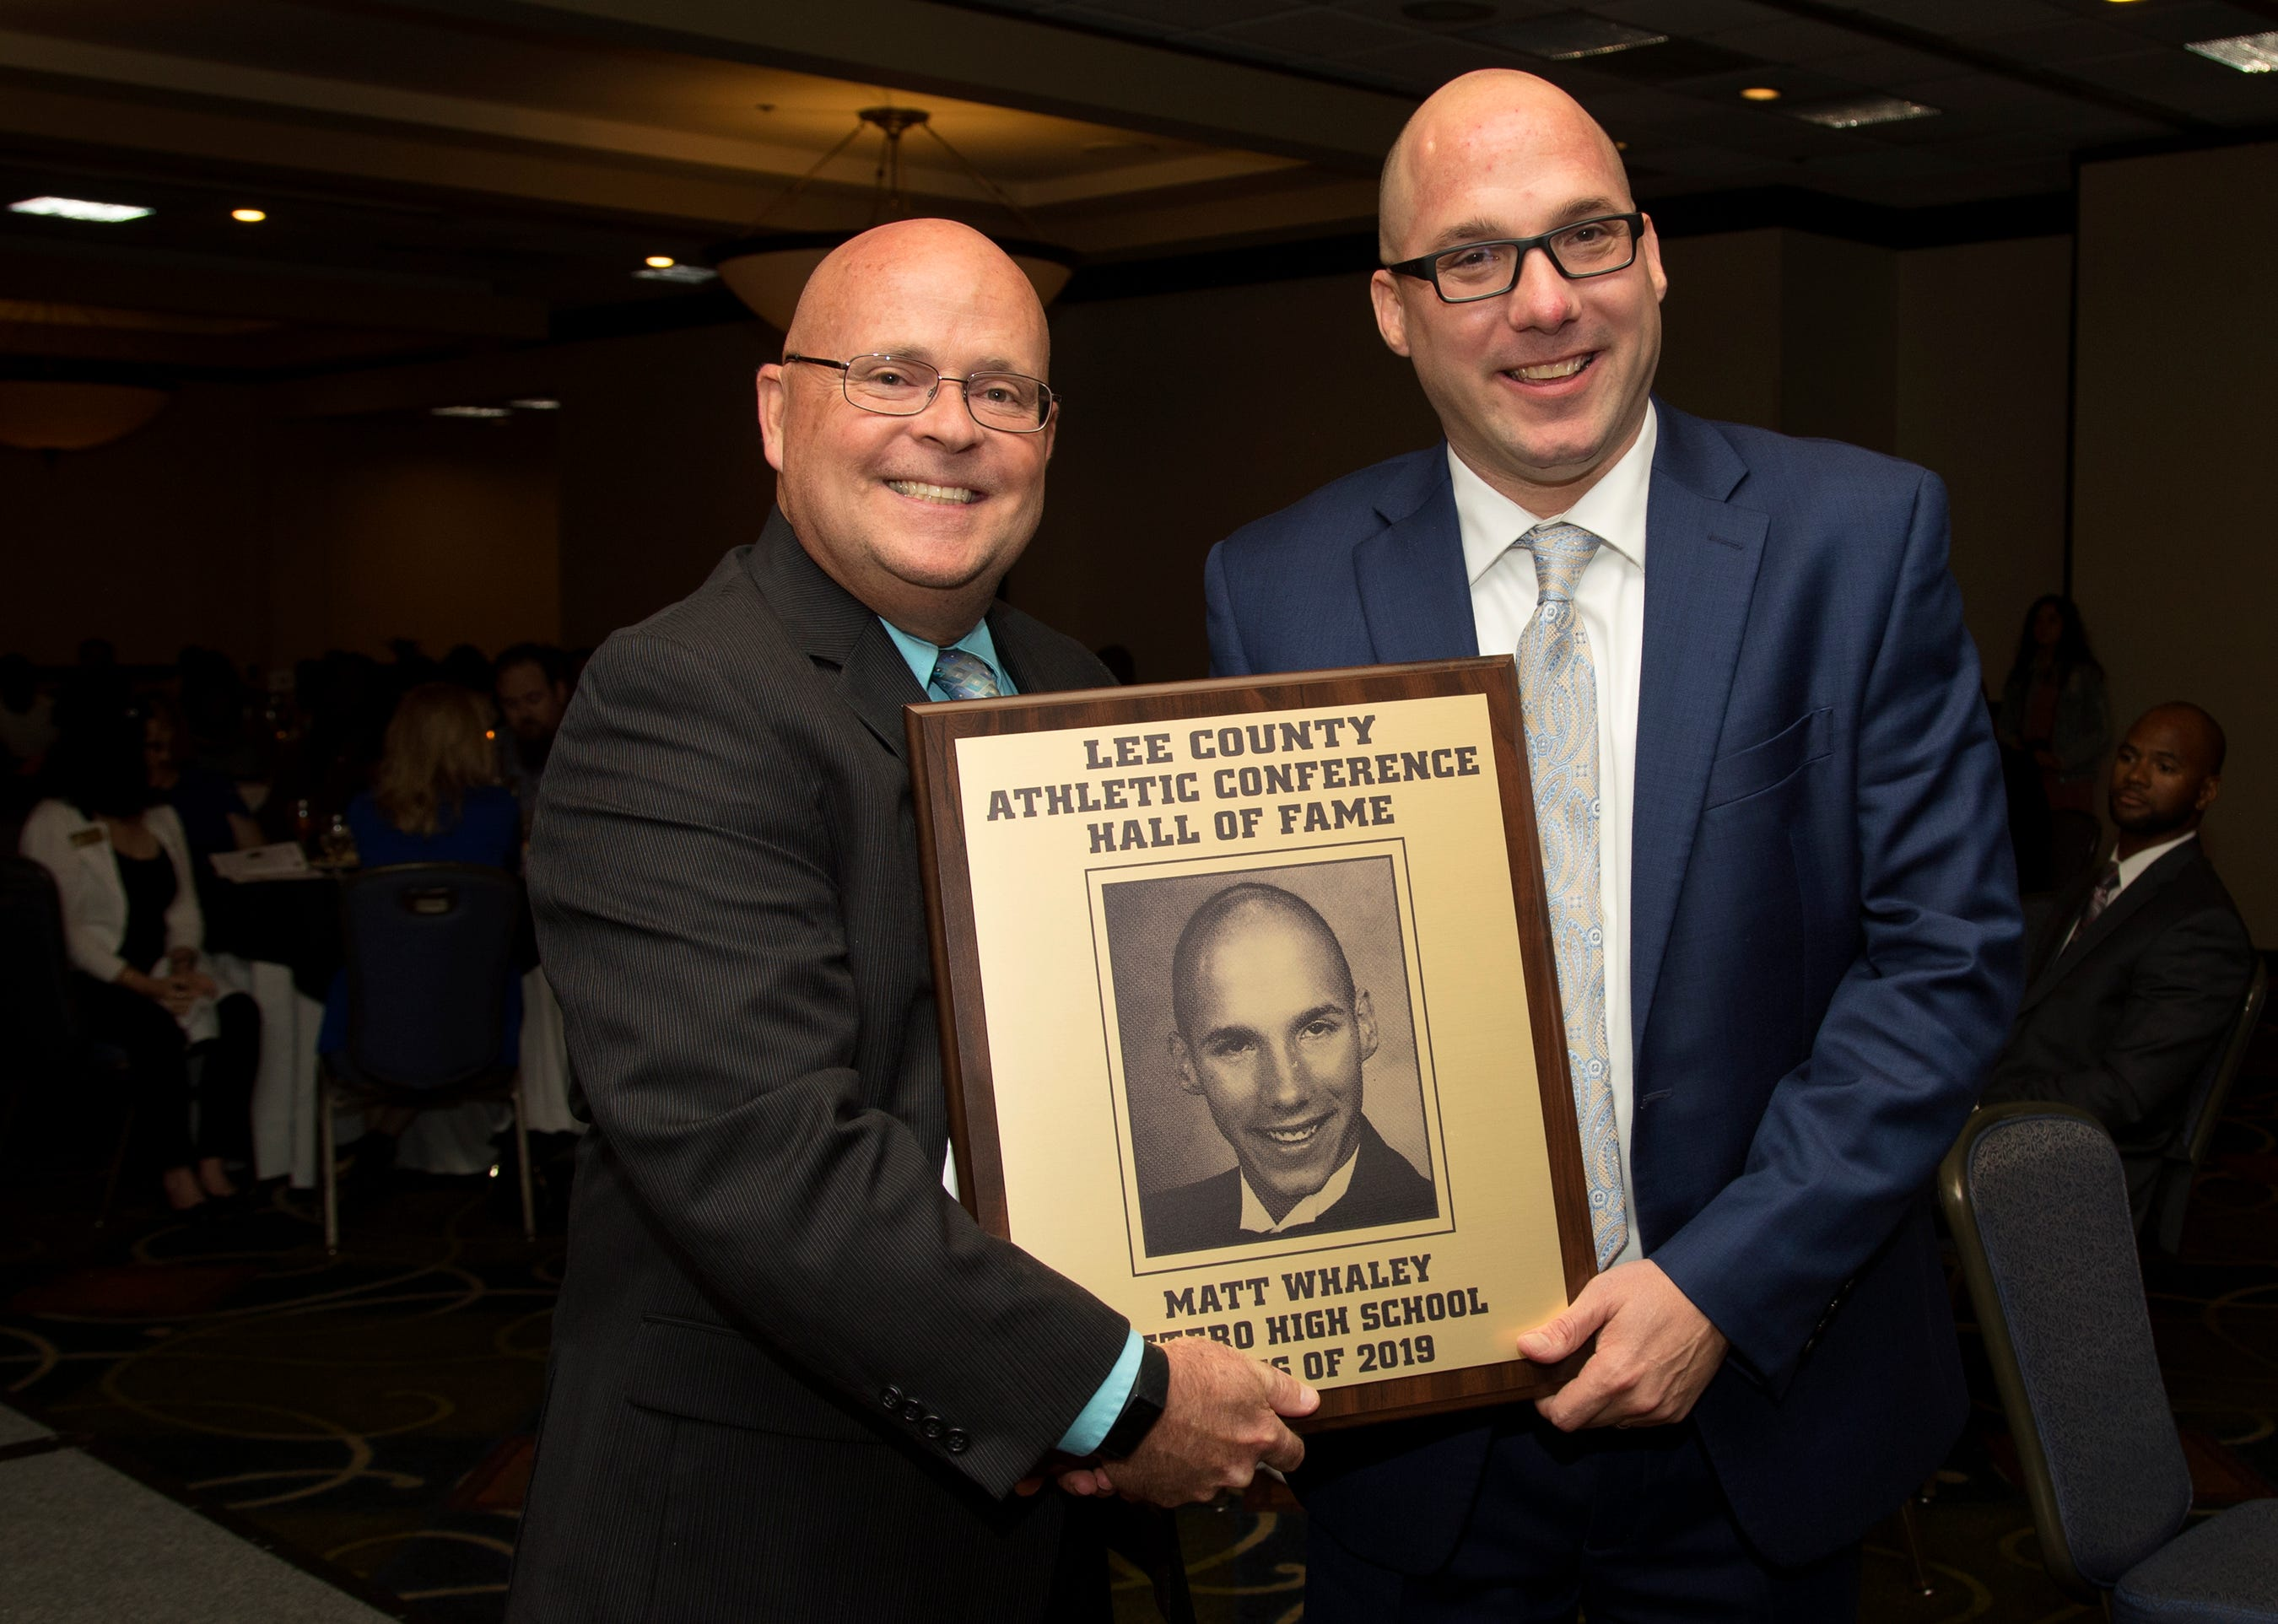 Matt Whaley, right, a 1996 Estero High School graduate, is inducted into the Lee County Athletic Conference Hall of Fame on Thursday in Fort Myers. Whaley ran track and cross country at Estero. Estero High School principal Clayton Simmons, left, is among Whaley's supporters.